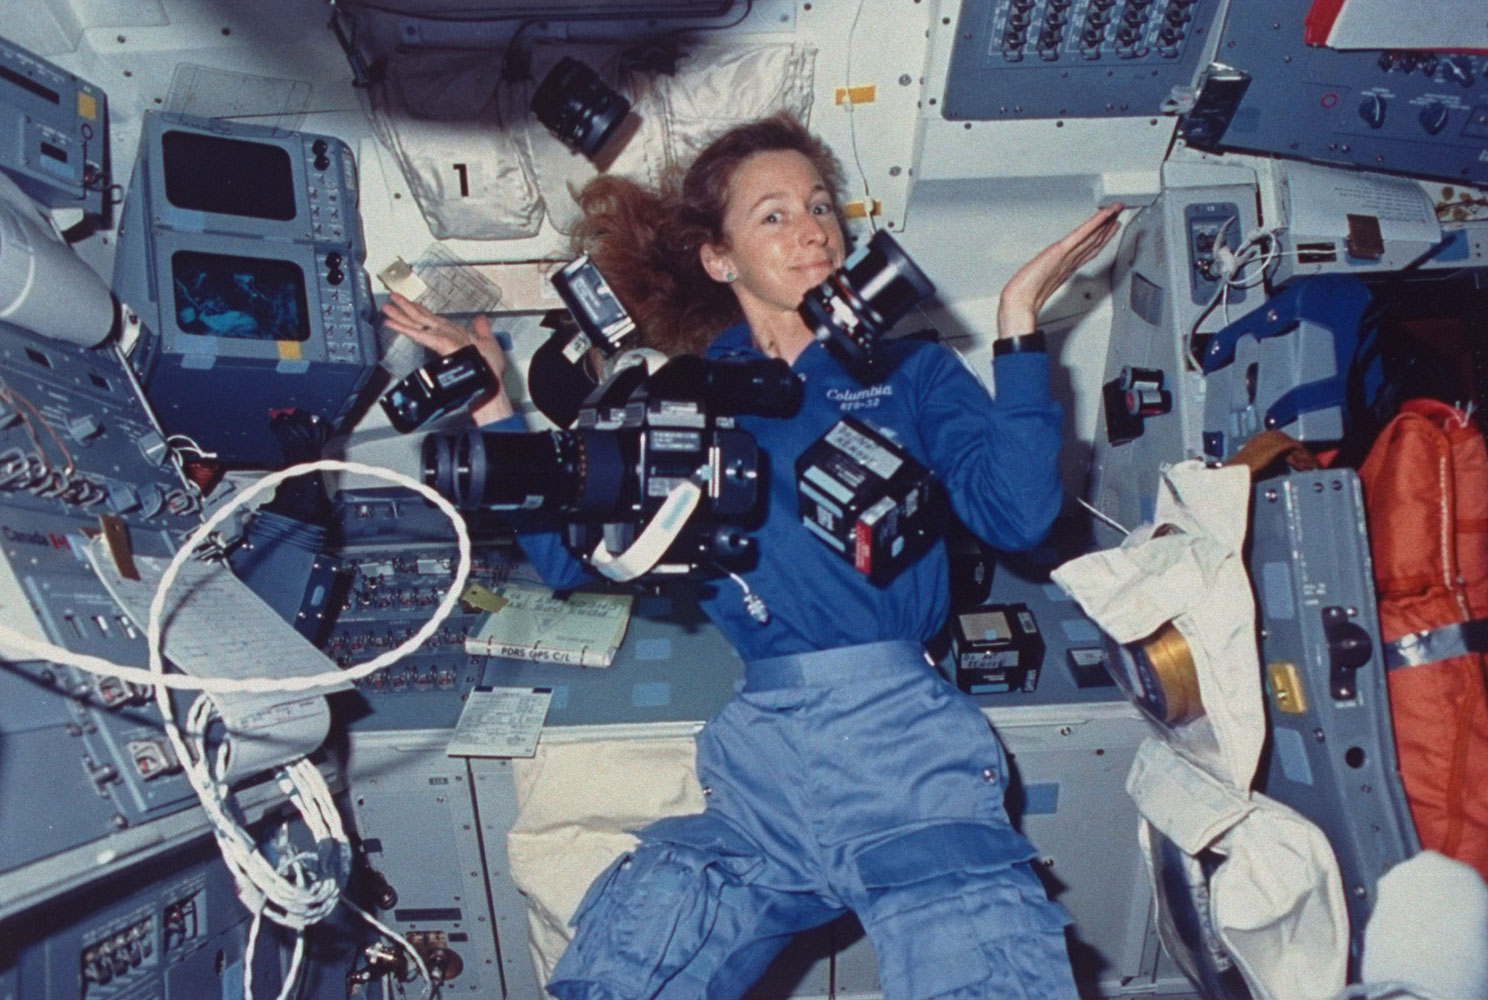 Astronaut Marsha Ivins, mission specialist aboard space shuttle Columbia, surrounded by cameras and supportive gear suspended by zero-gravity, on Jan. 1, 1990. Ivins flew in space five times.